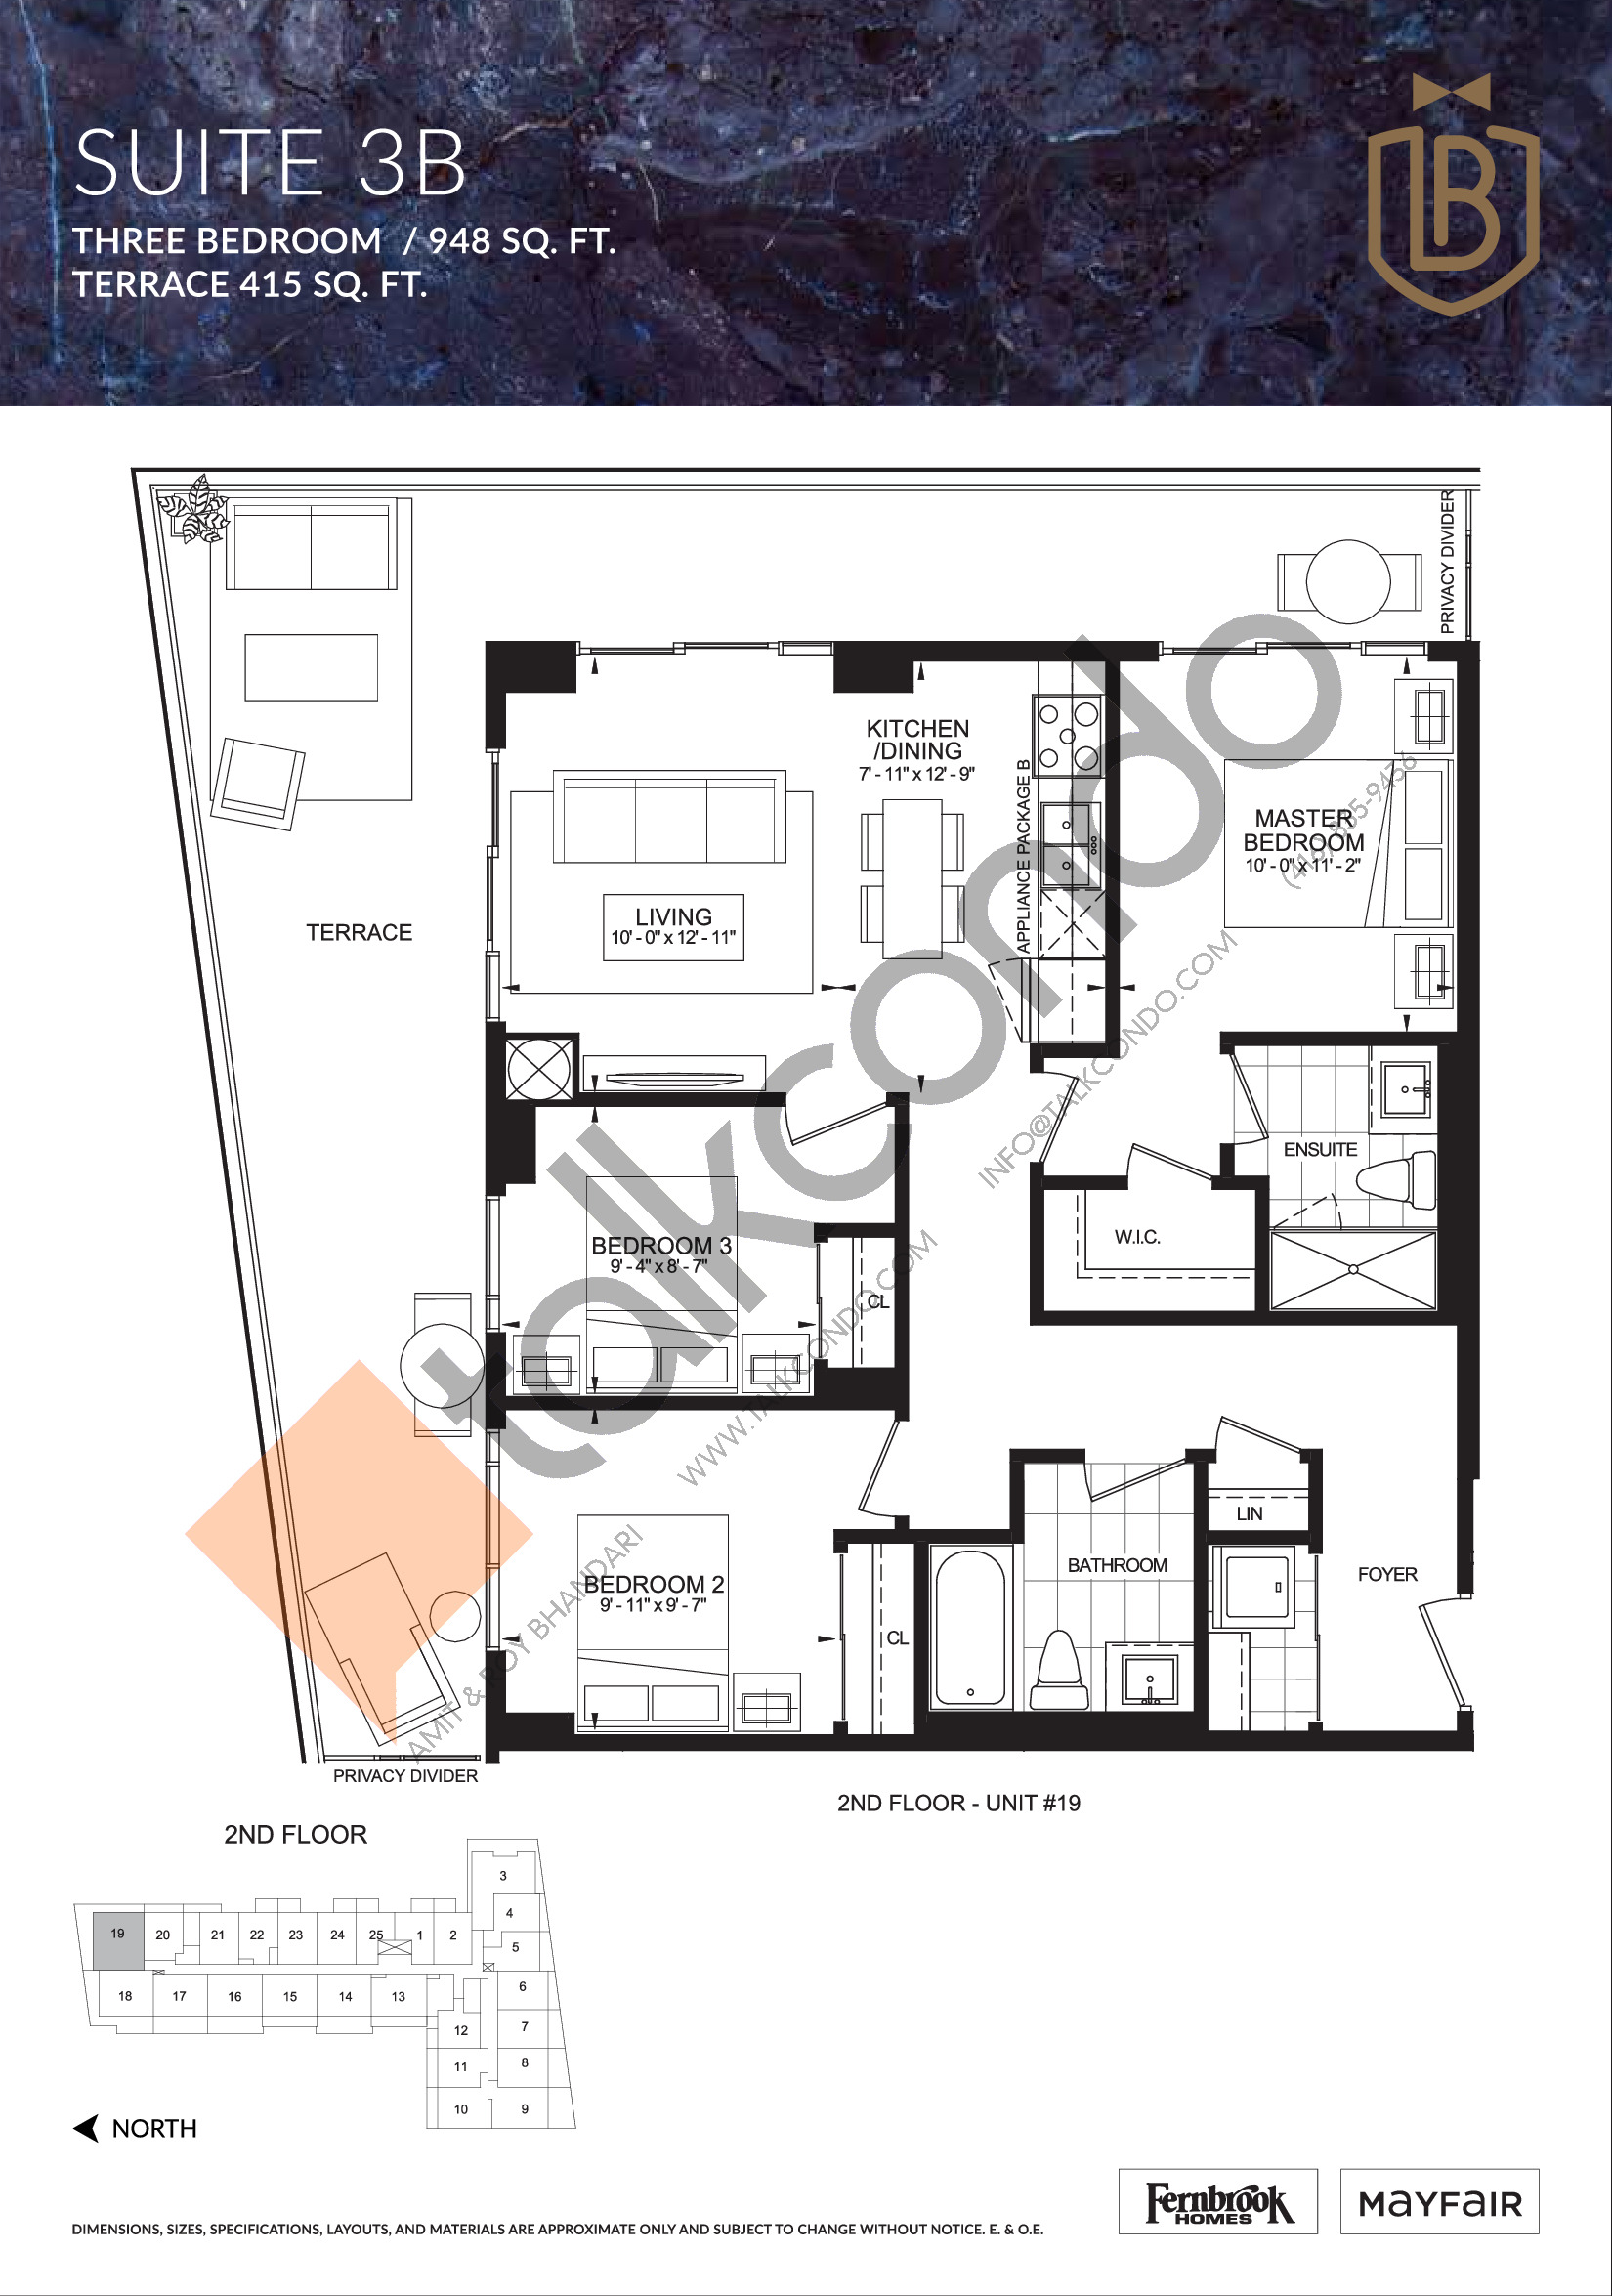 Suite 3B (Terrace) Floor Plan at The Butler Condos - 948 sq.ft